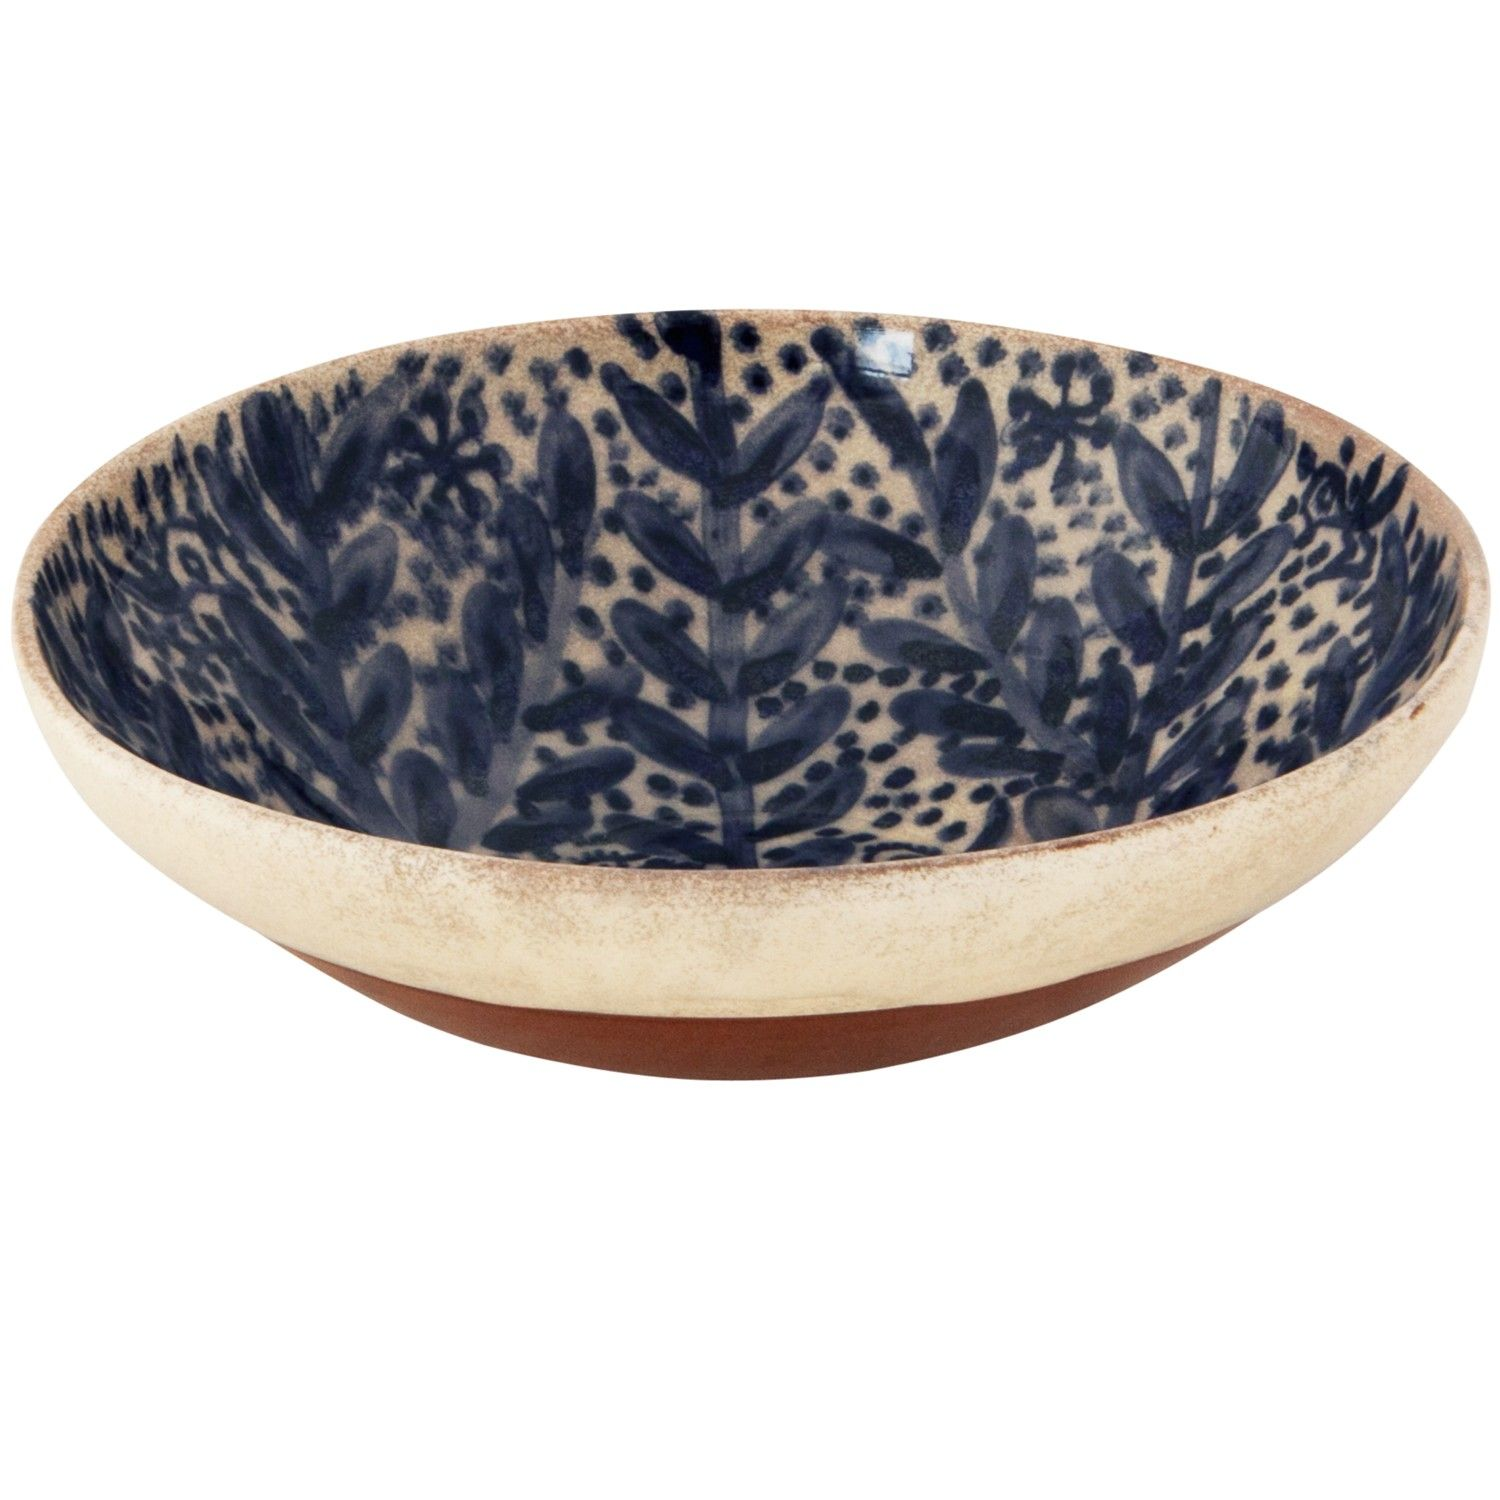 Decorative Ceramic Bowls Explore Decorative Ceramic Bowls With The Relaxed Greek Island